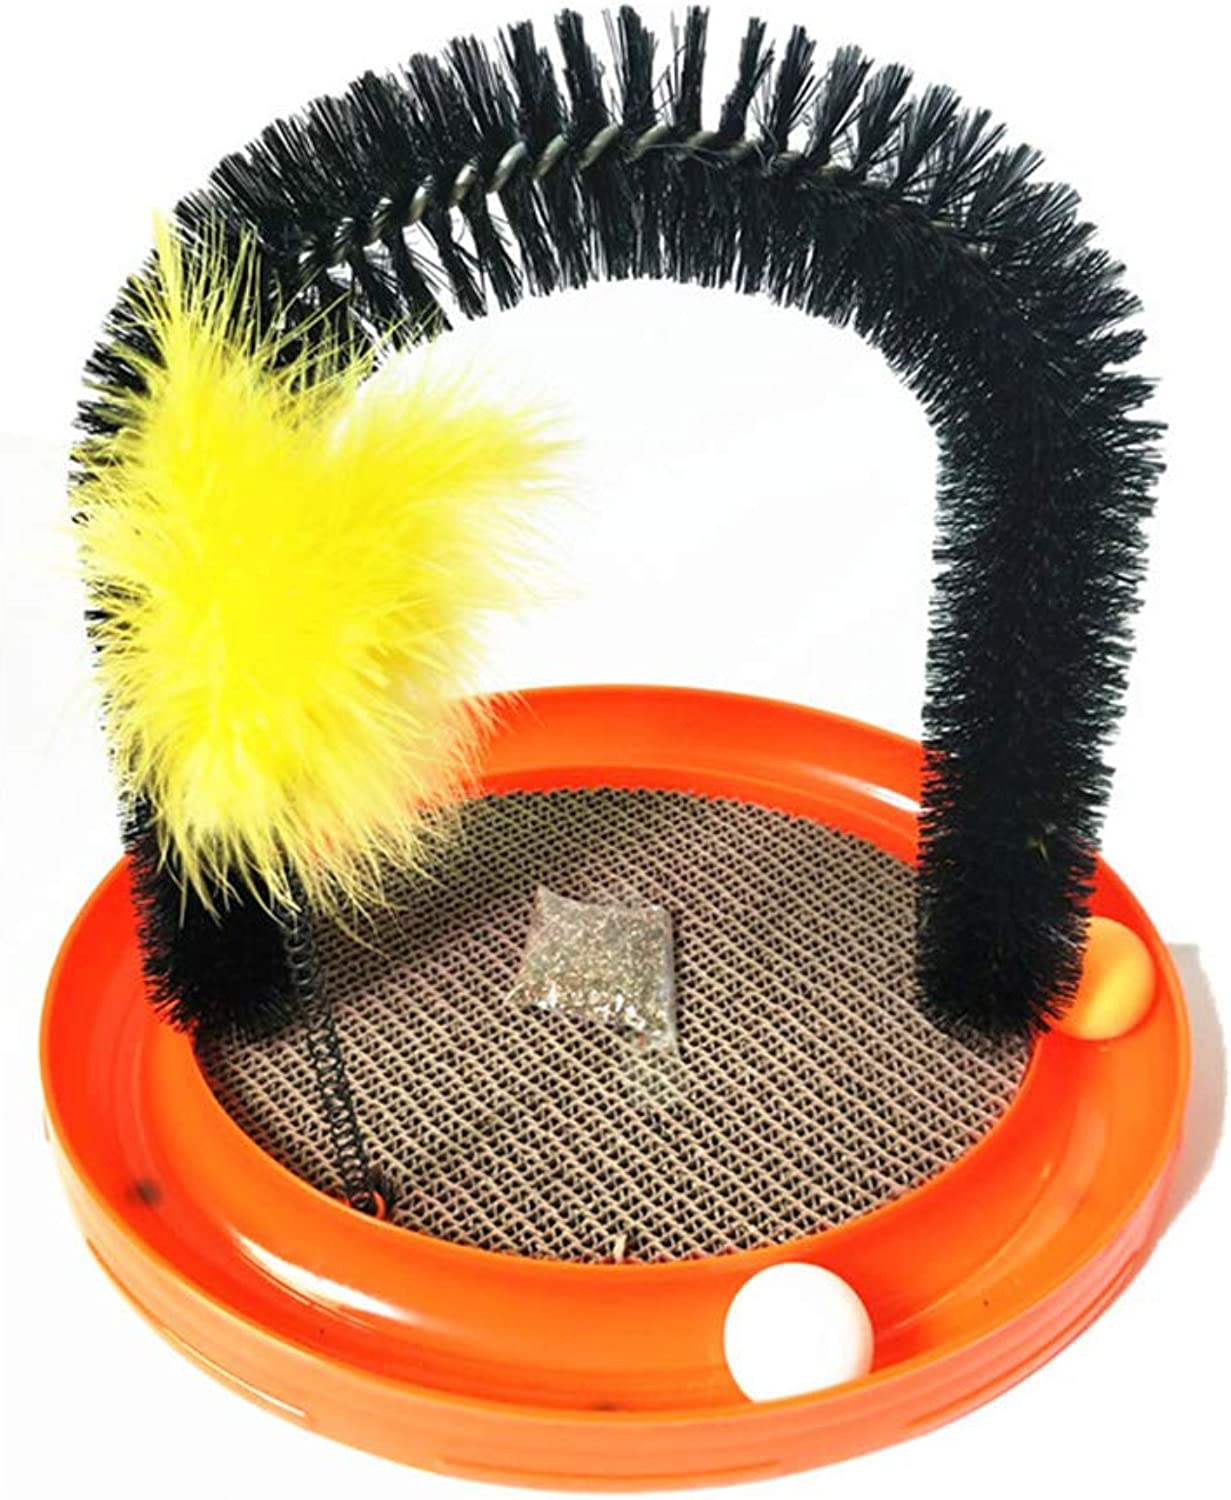 Cat Toys, Cat Scratch Board, Cat Stick, Play Ball, Cat Arch, Multifunctional Fourinone Cat Toy, with Ball, Cat Wand, Catnip